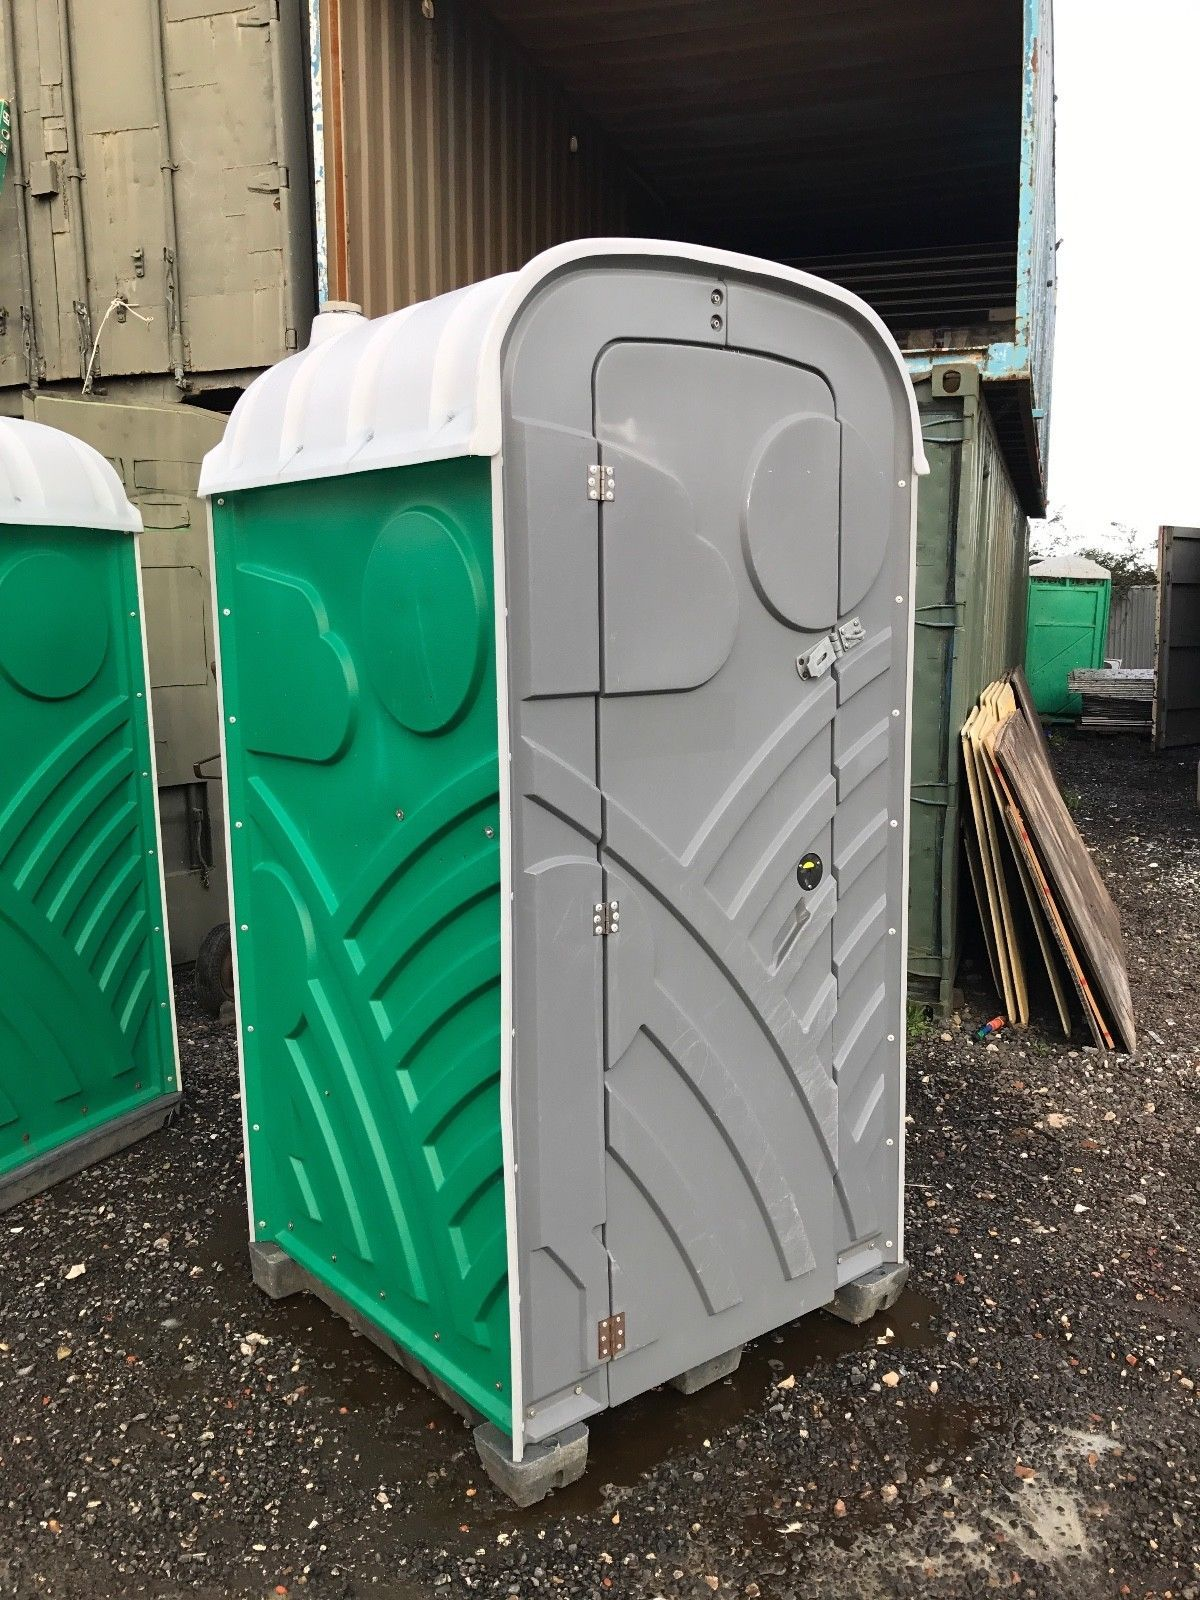 4ft X 4ft Chemical Toilet Builders Loo Site Toilet Portable Toile Used Trucks Plants Online Outdoor Storage Box